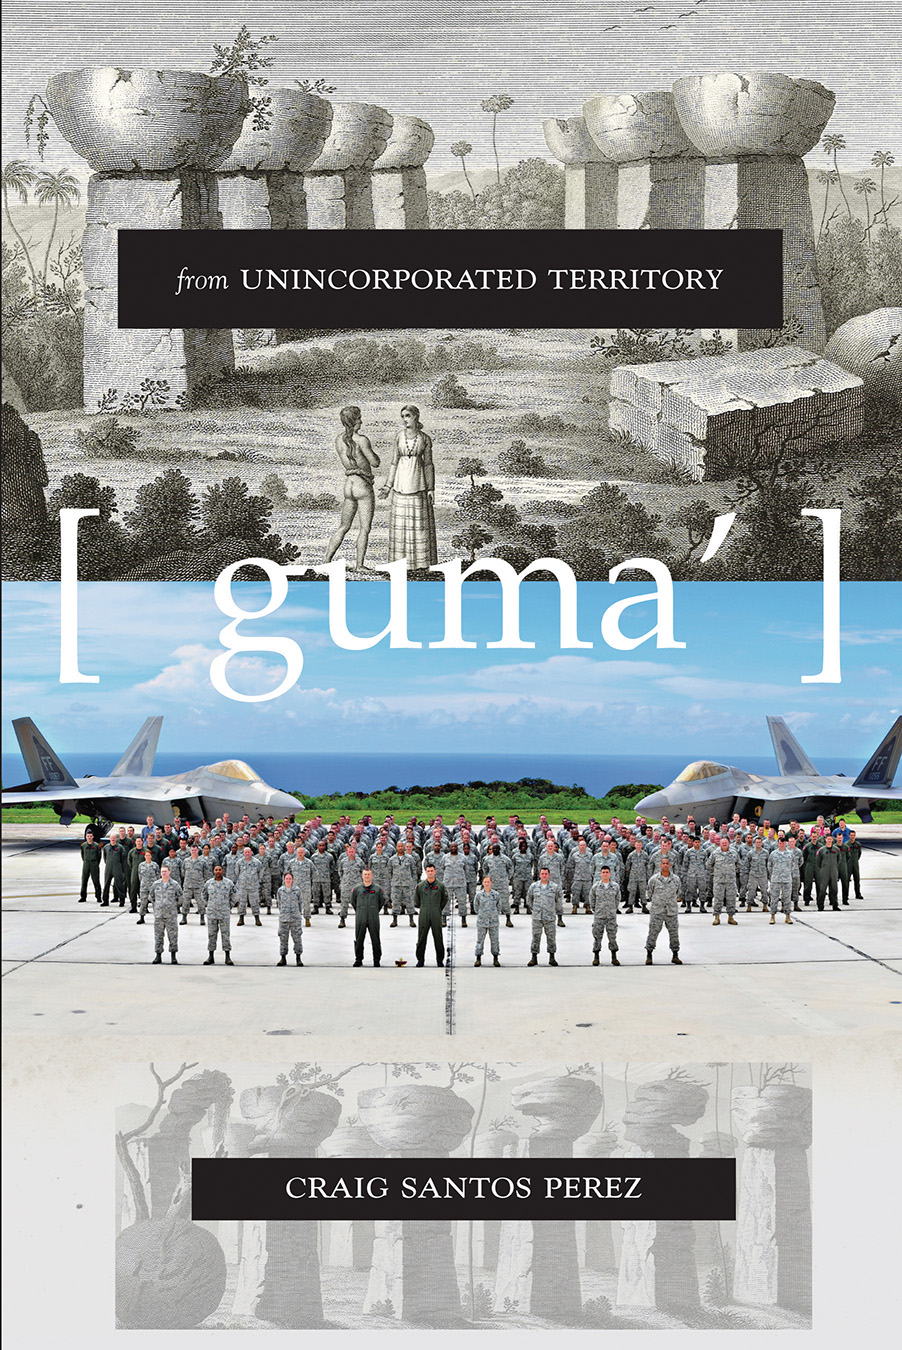 from unincorporated territory [guma']